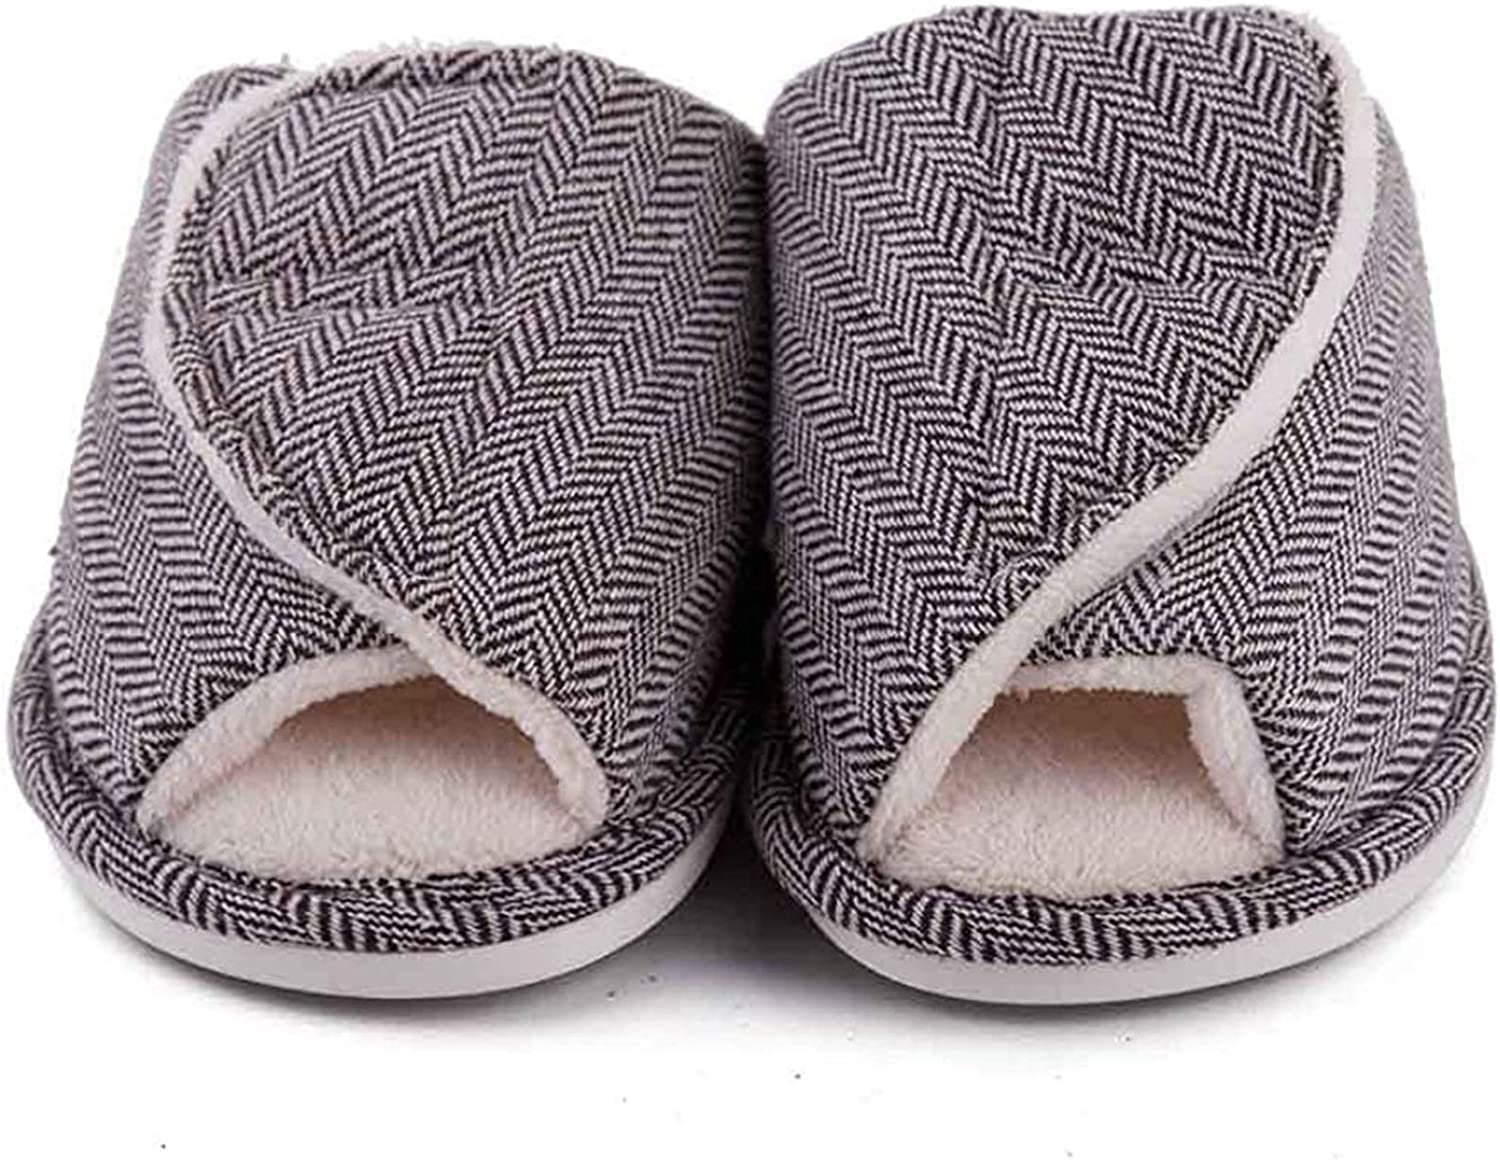 ZHXMYD Velcro Slippers for Women C Max 69% OFF Adjustable Opening Indianapolis Mall Size with